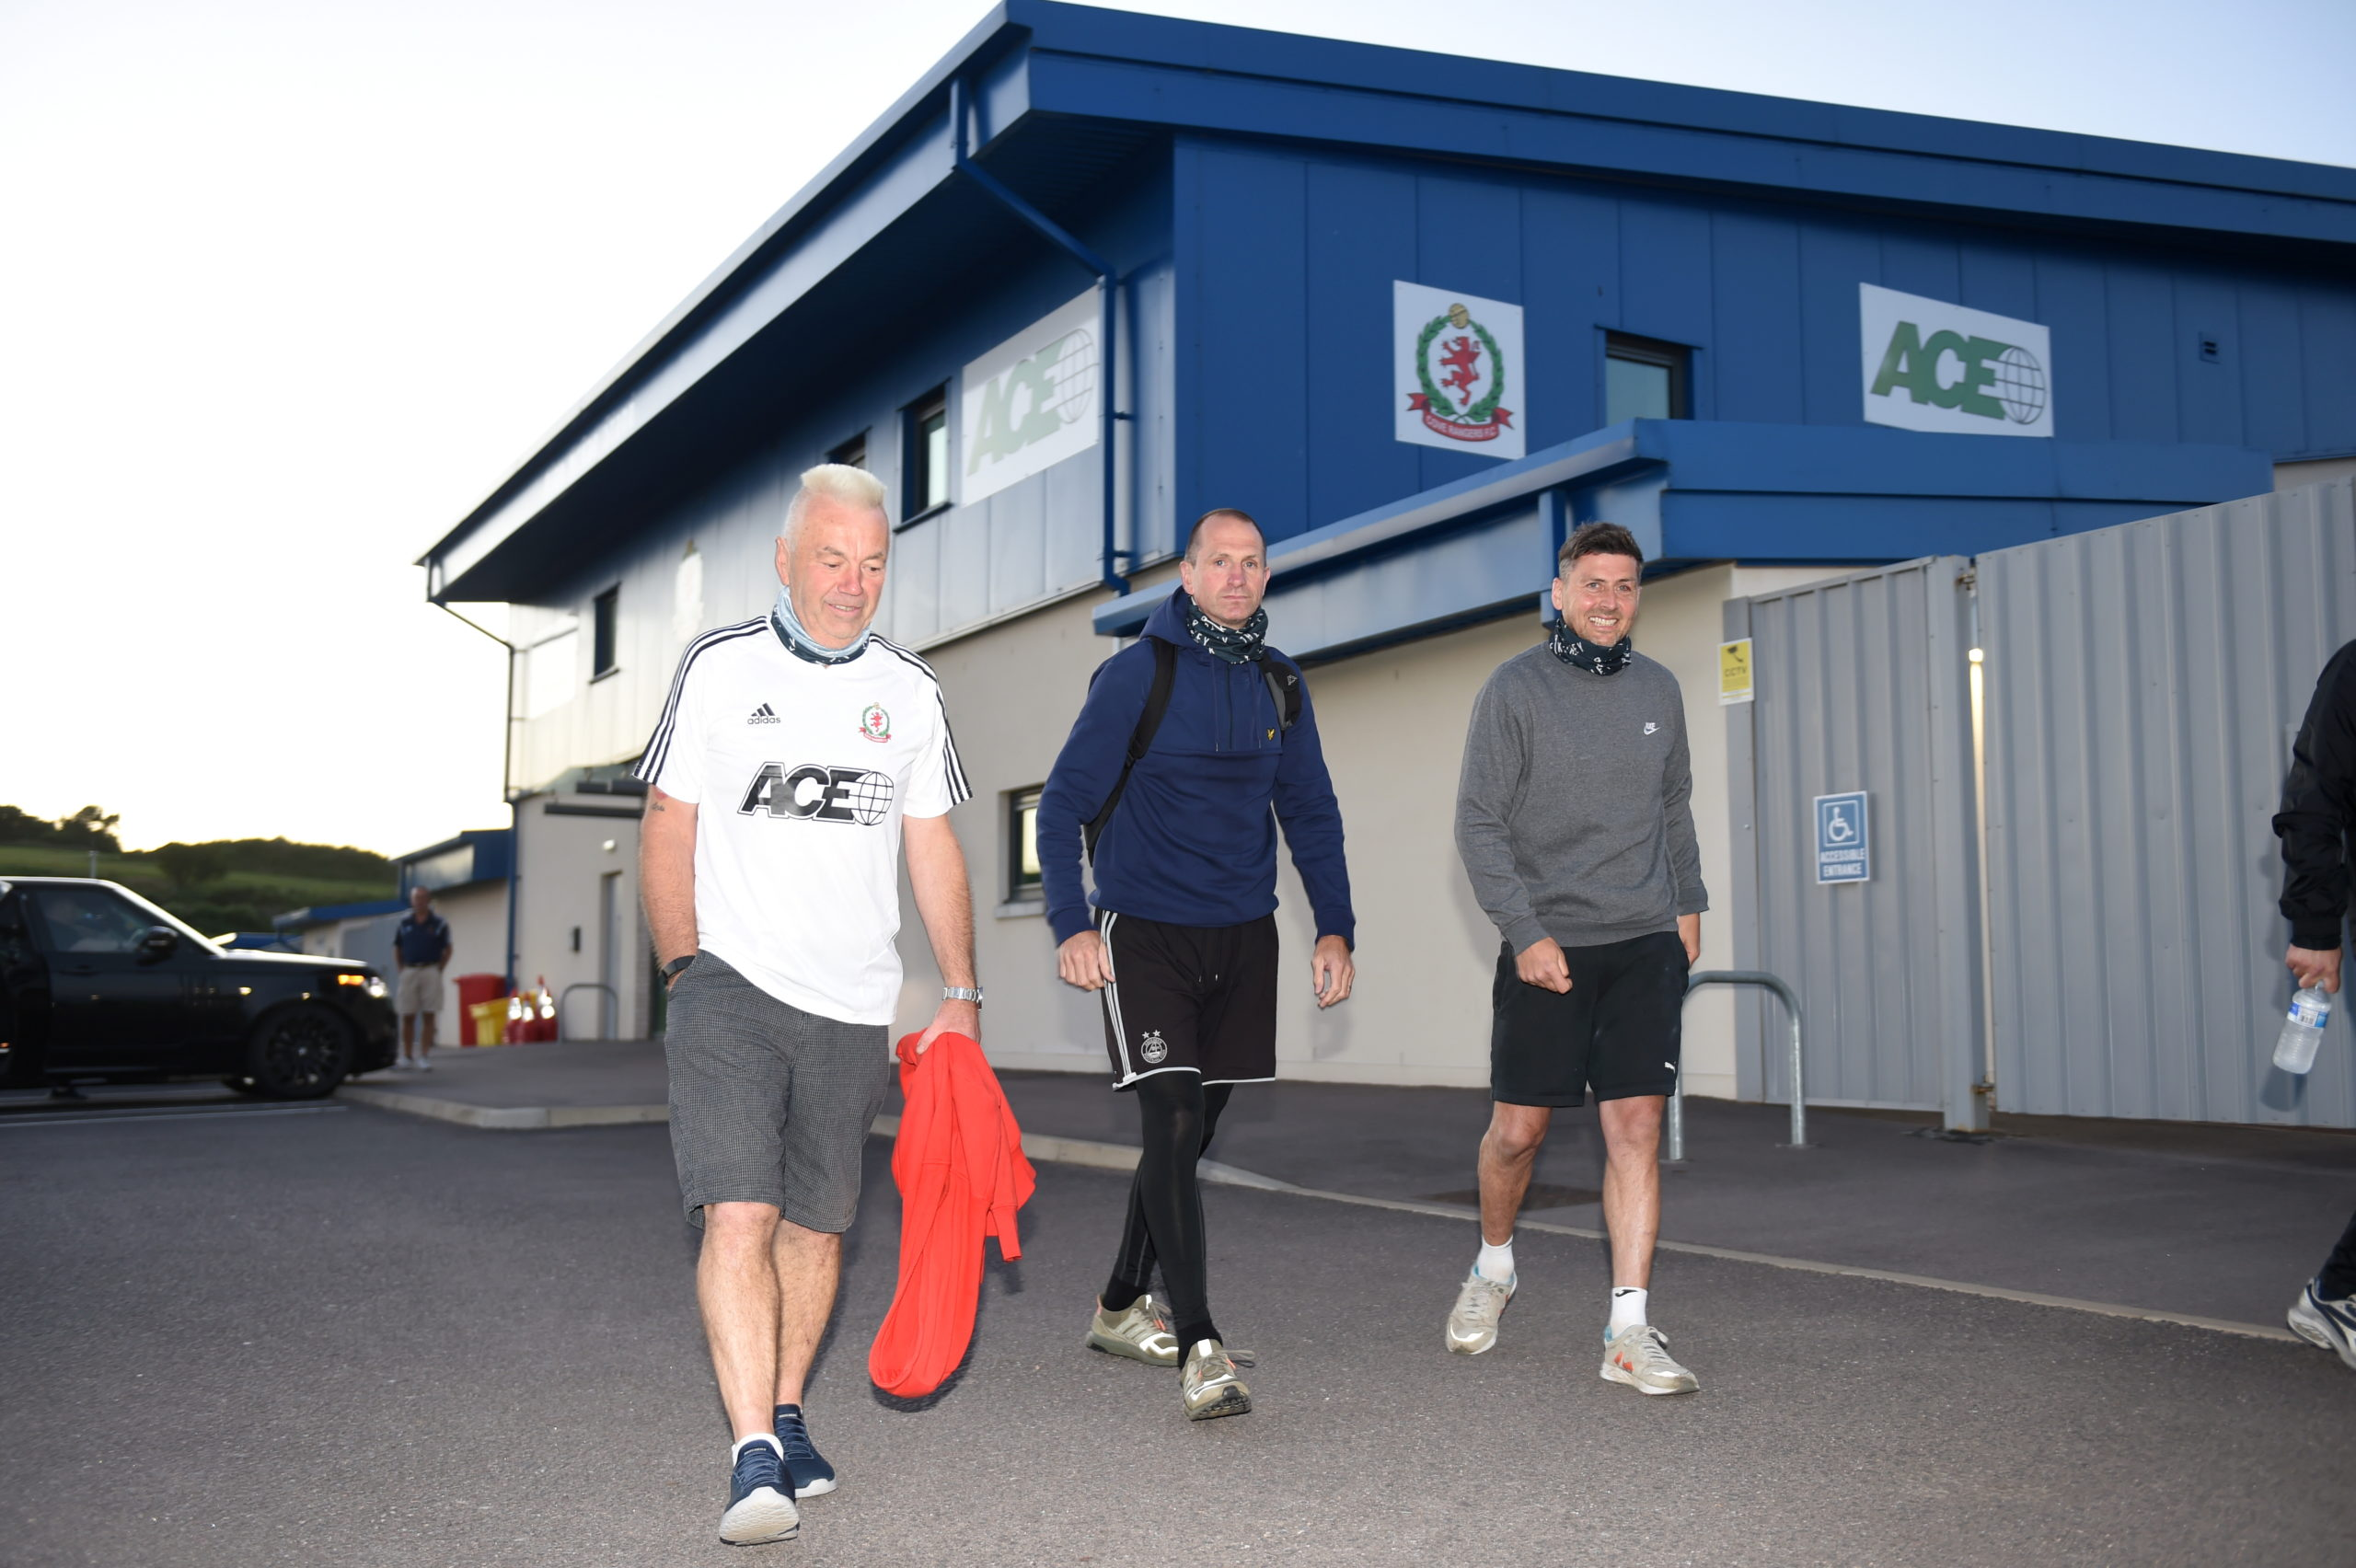 Ian Yule, Mark Perry and Roy McBain as they set off on their fundraising walk from the Balmoral Stadium to Tannadice. Picture by Paul Glendell